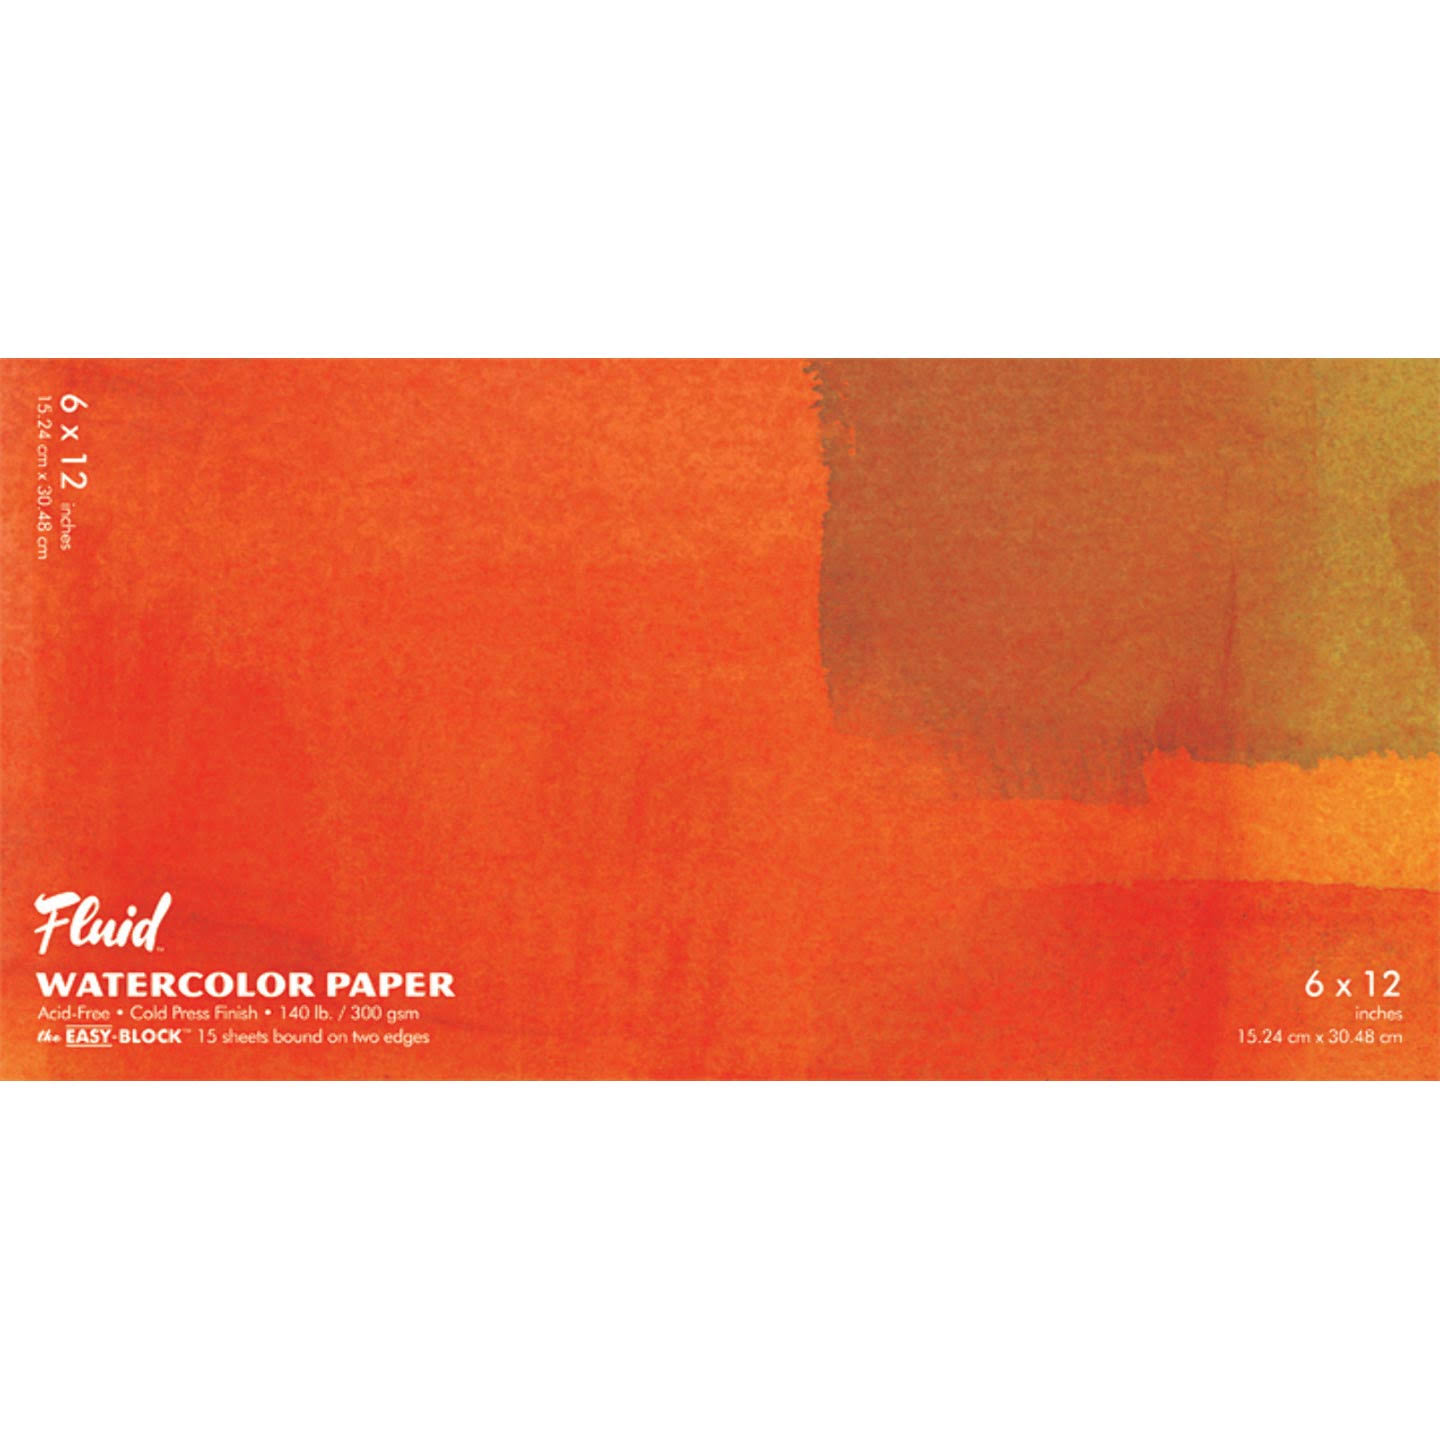 Fluid Watercolor Paper Pad - 15 Sheets